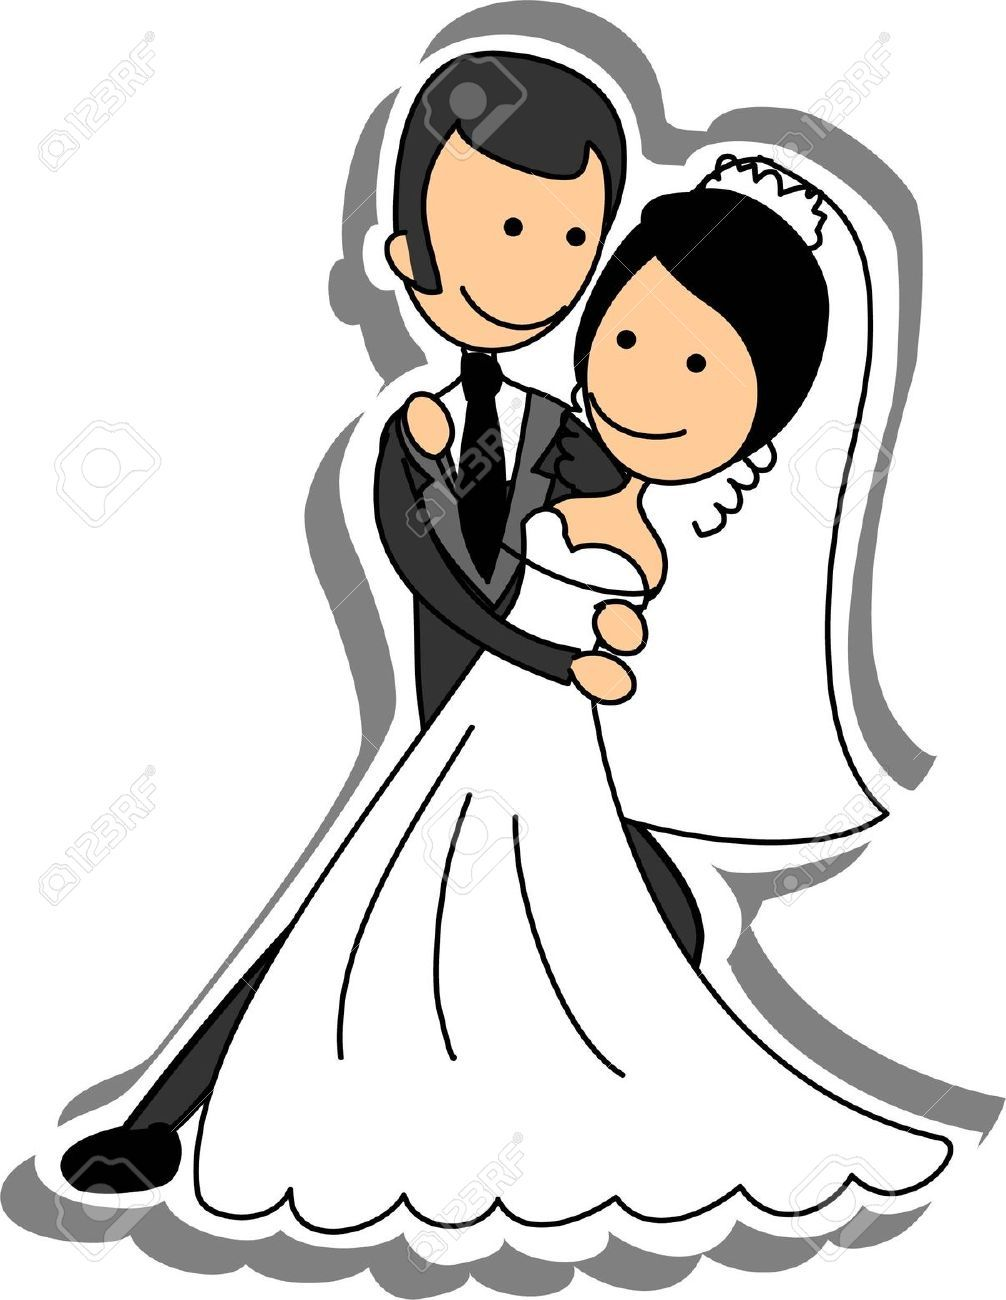 wedding picture  bride and groom in love royalty free bride clipart bridal clip art free